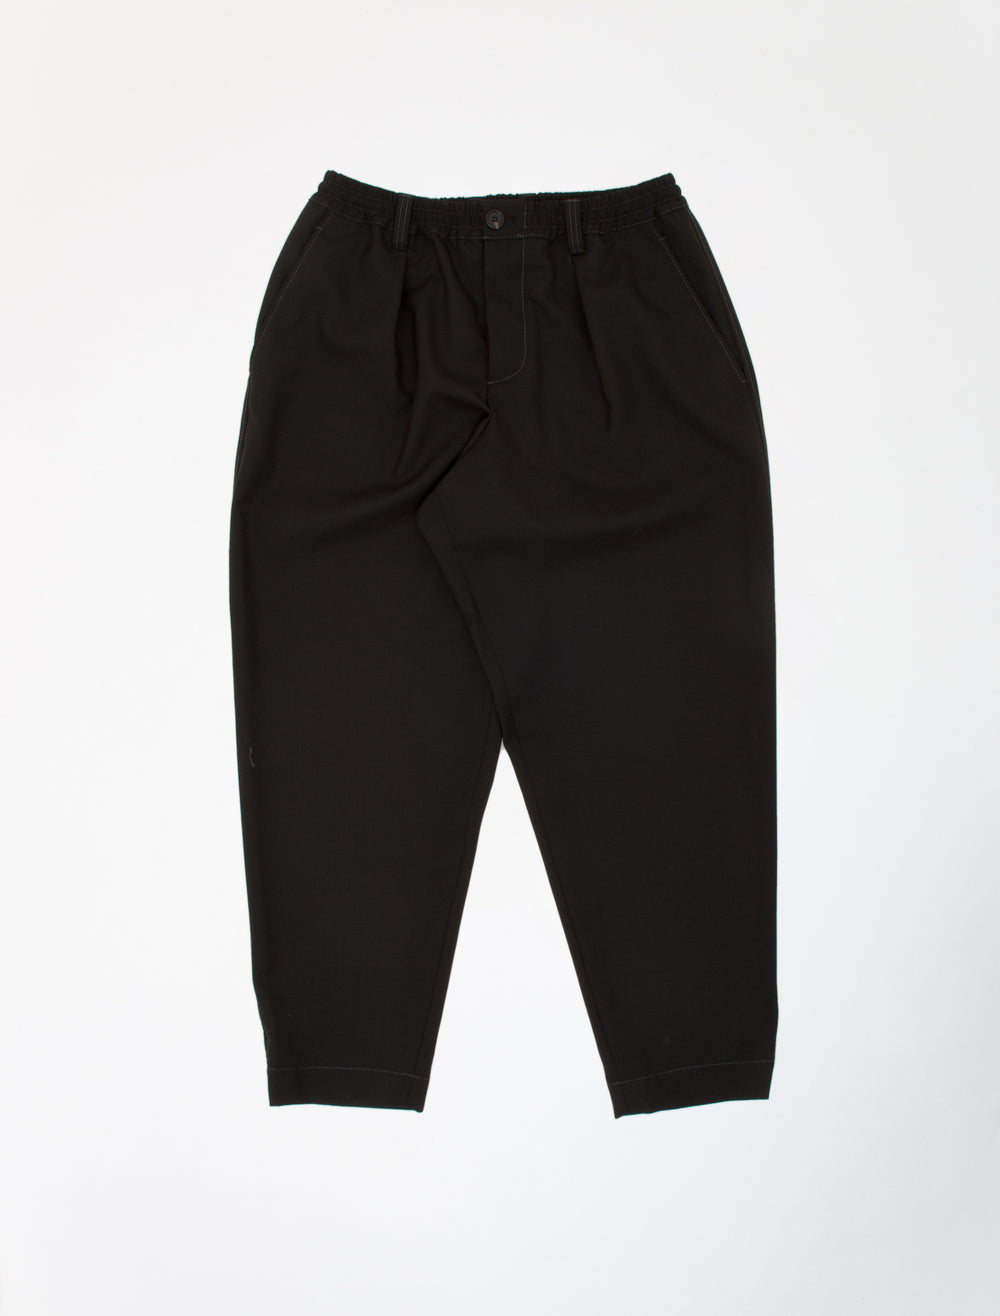 MARNI BLACK-PLEATED-TROUSER-01